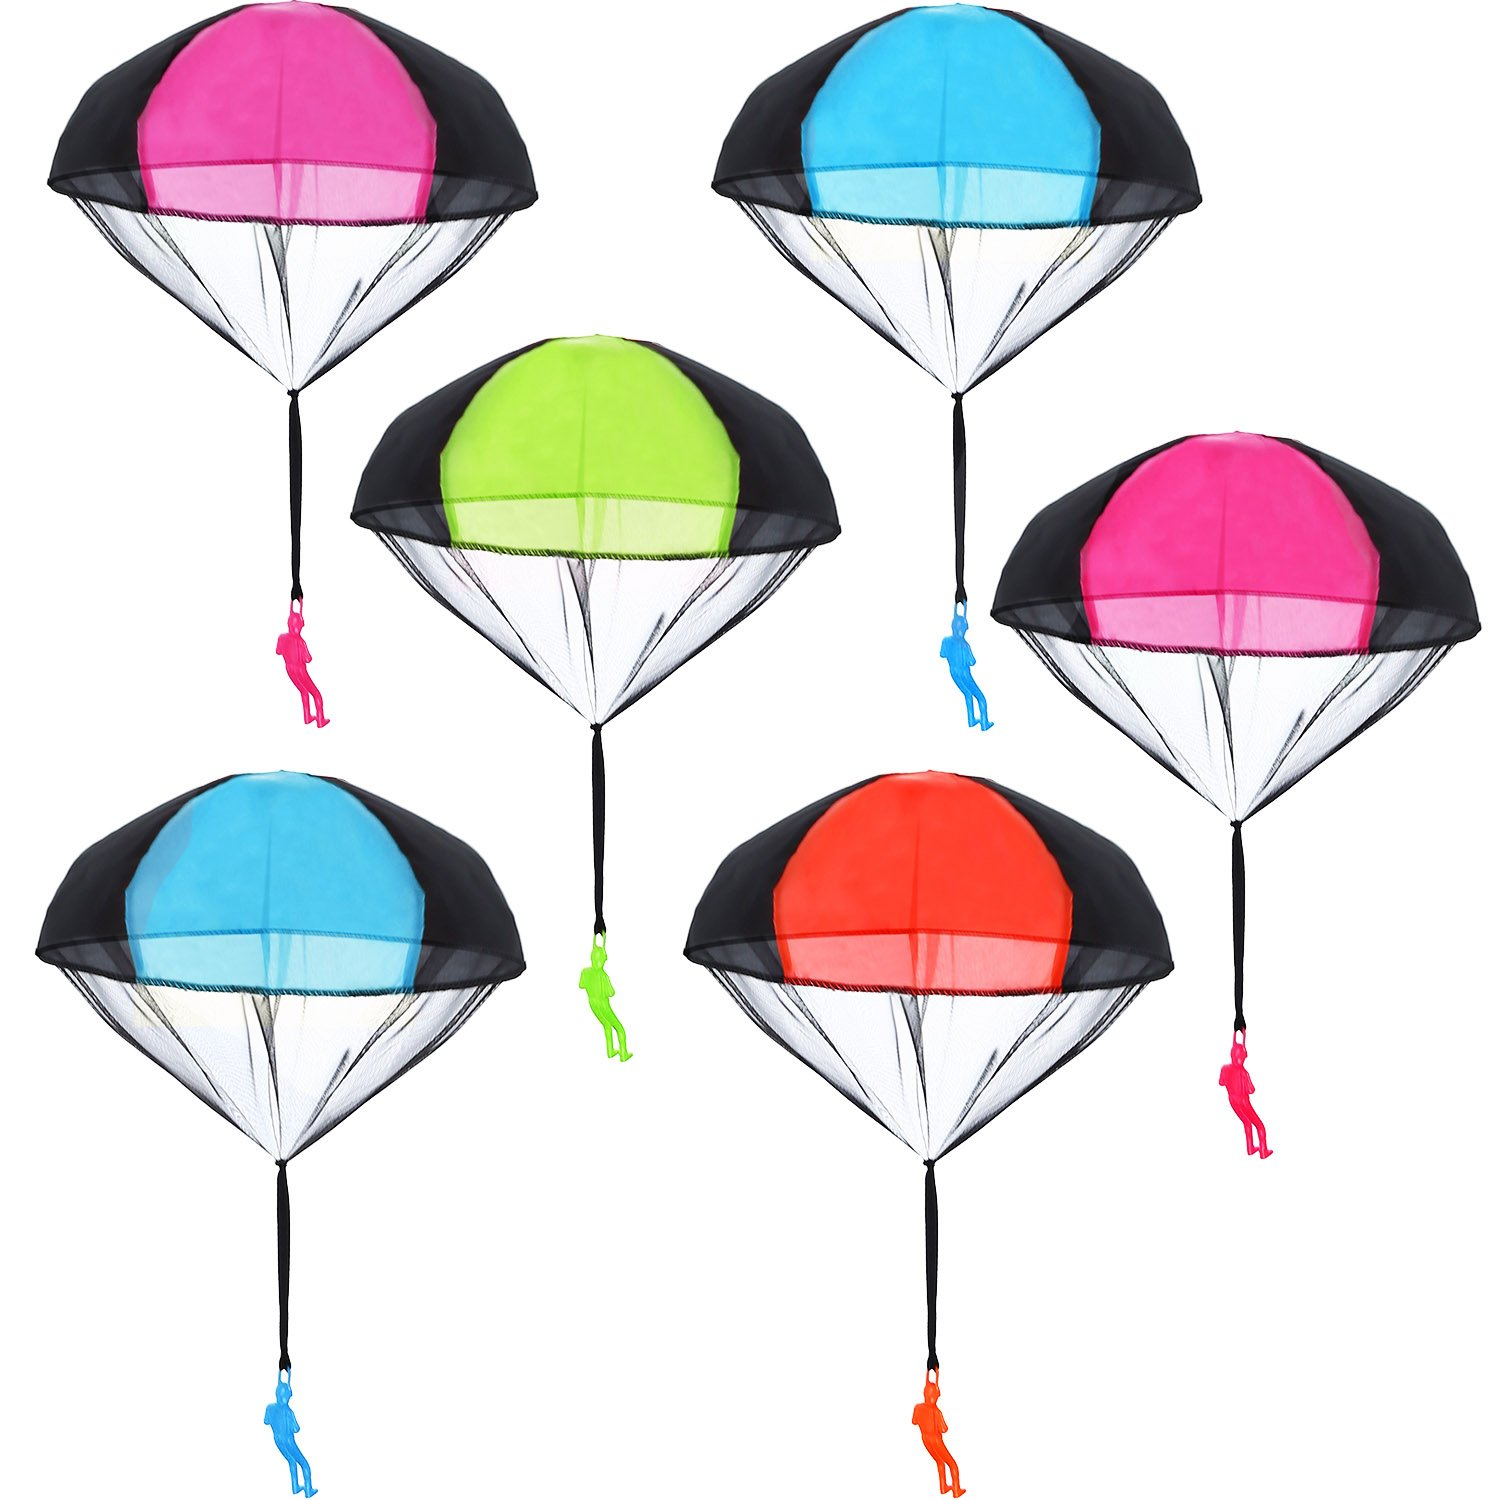 Blulu 6 Pieces Parachute Toys Tangle Free Throwing Hand Throw Soldiers Toss It Up and Watching Landing Outdoor Toys by Blulu